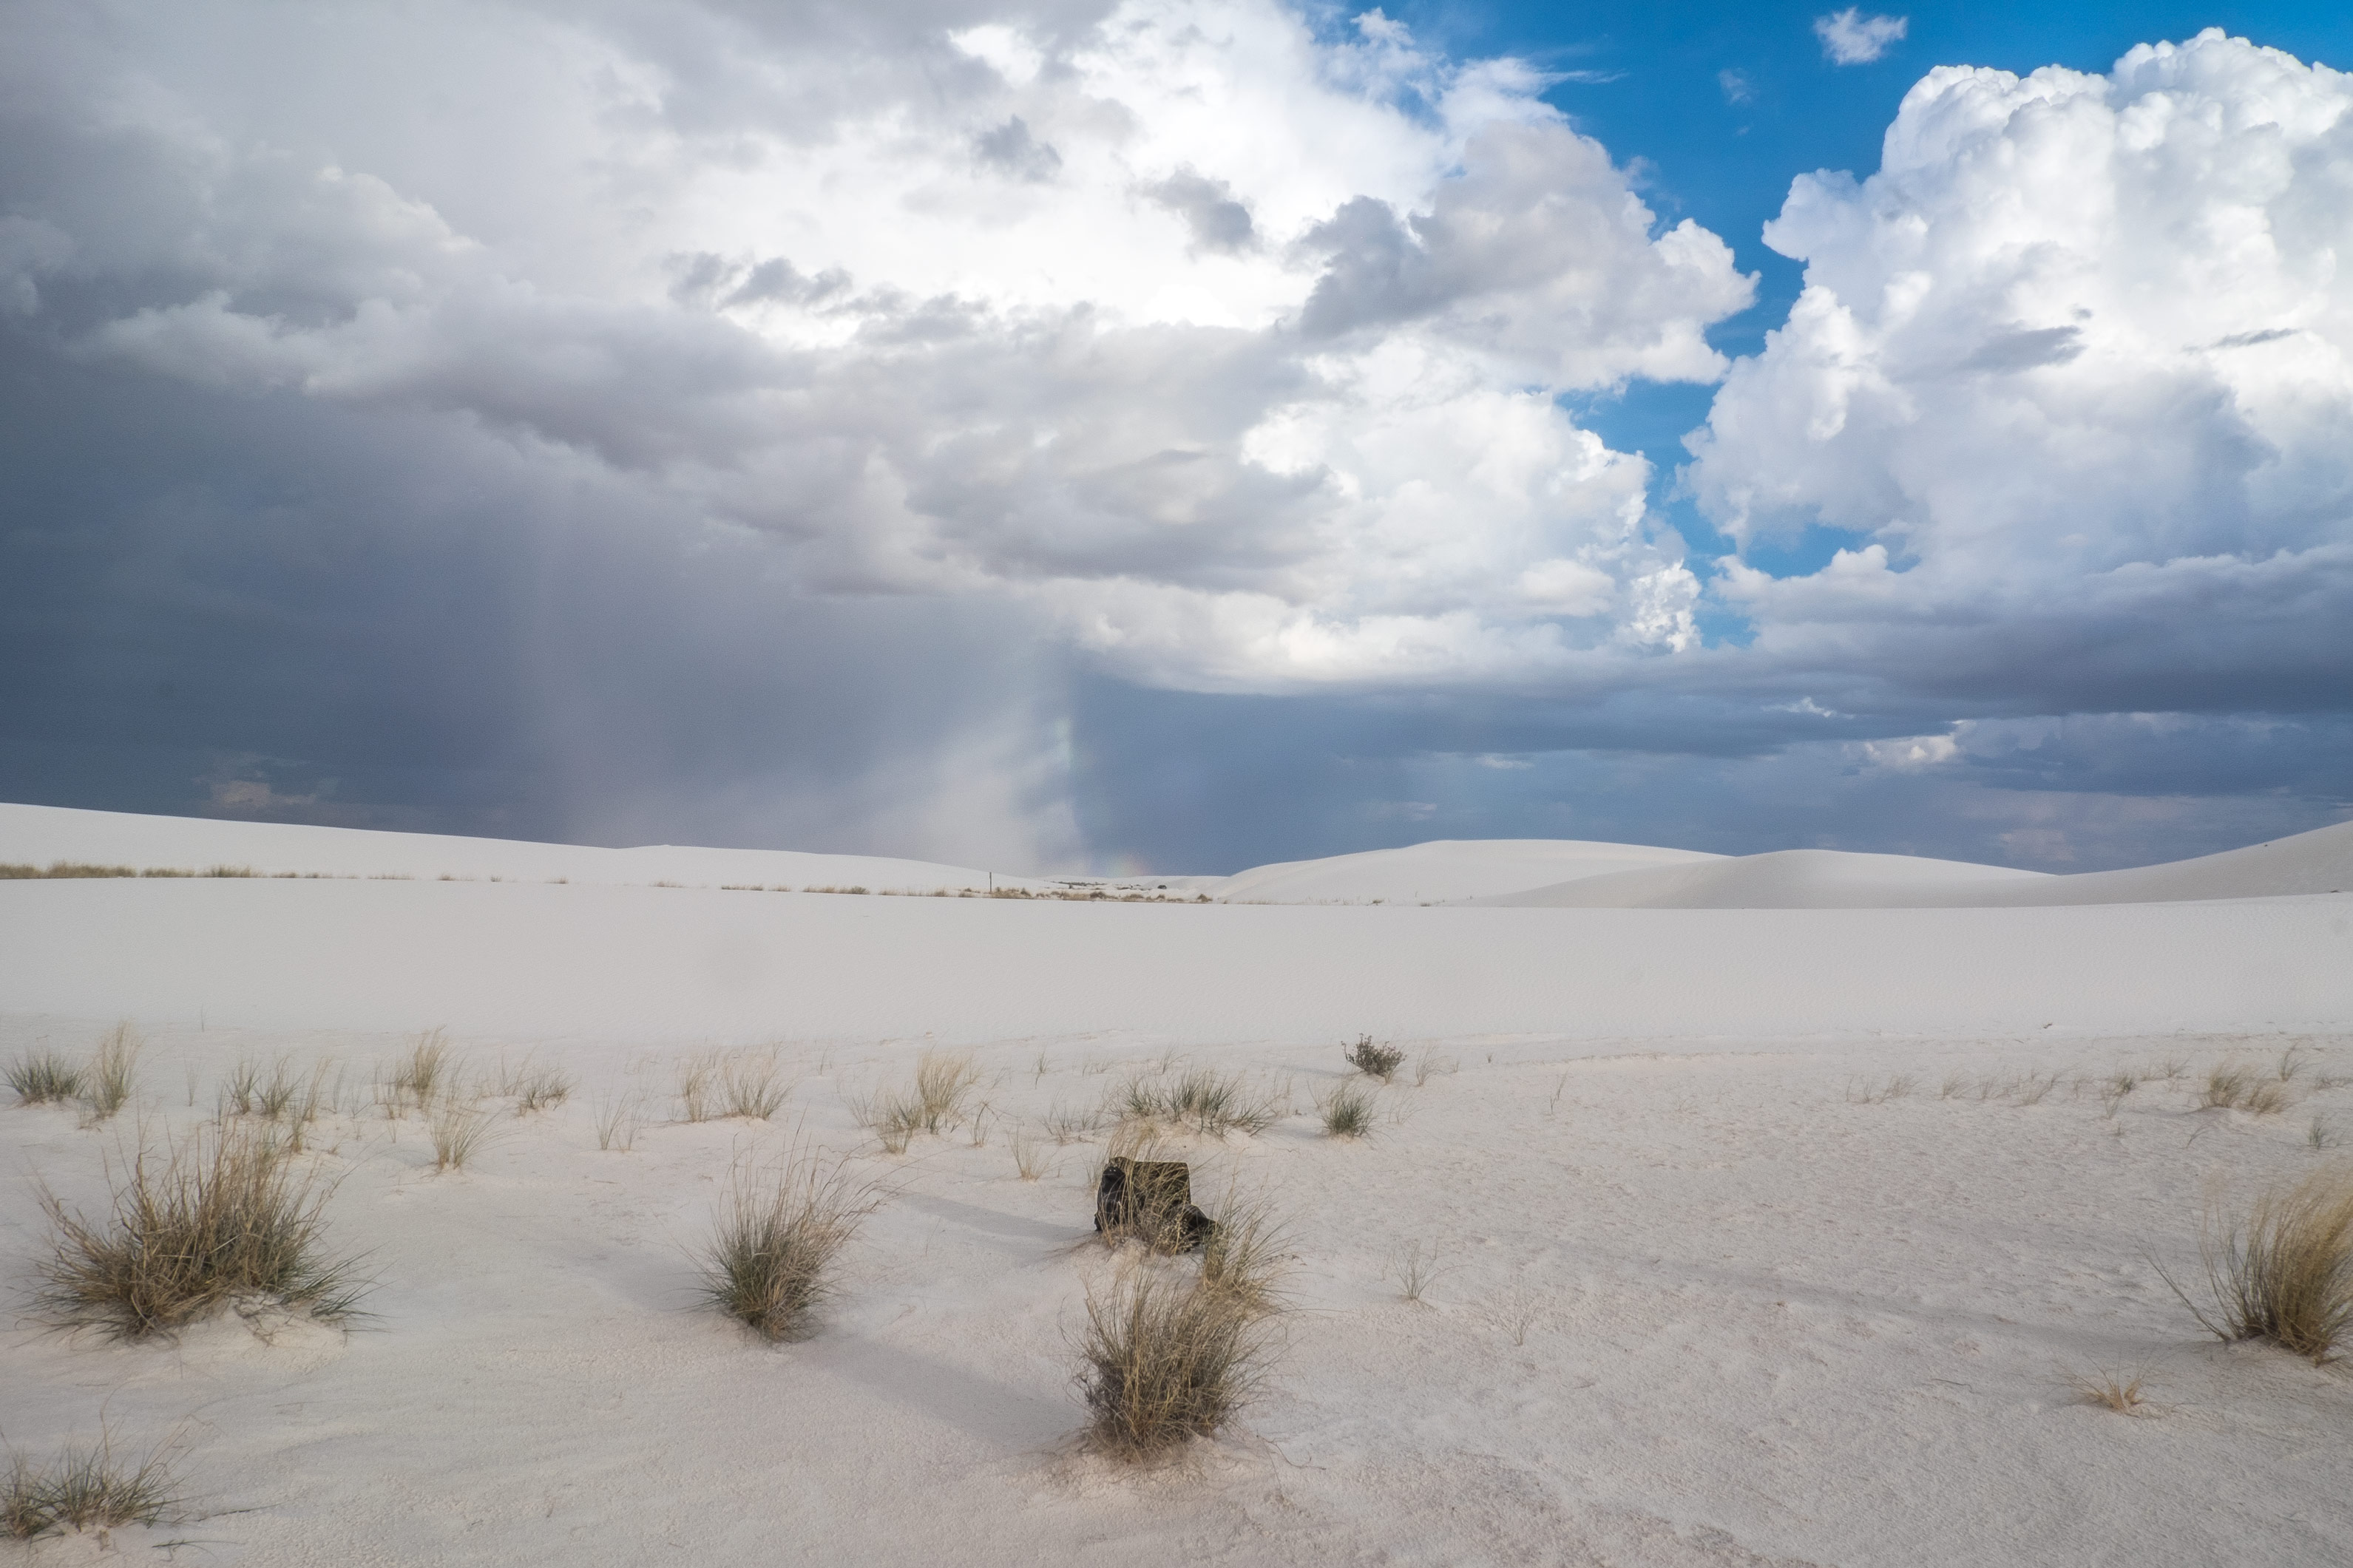 white sands national monument, new mexico, land of enchantment, alamogordo, photography, professional photographer,  sand dunes, white sand dunes, national park, national park service, NPS